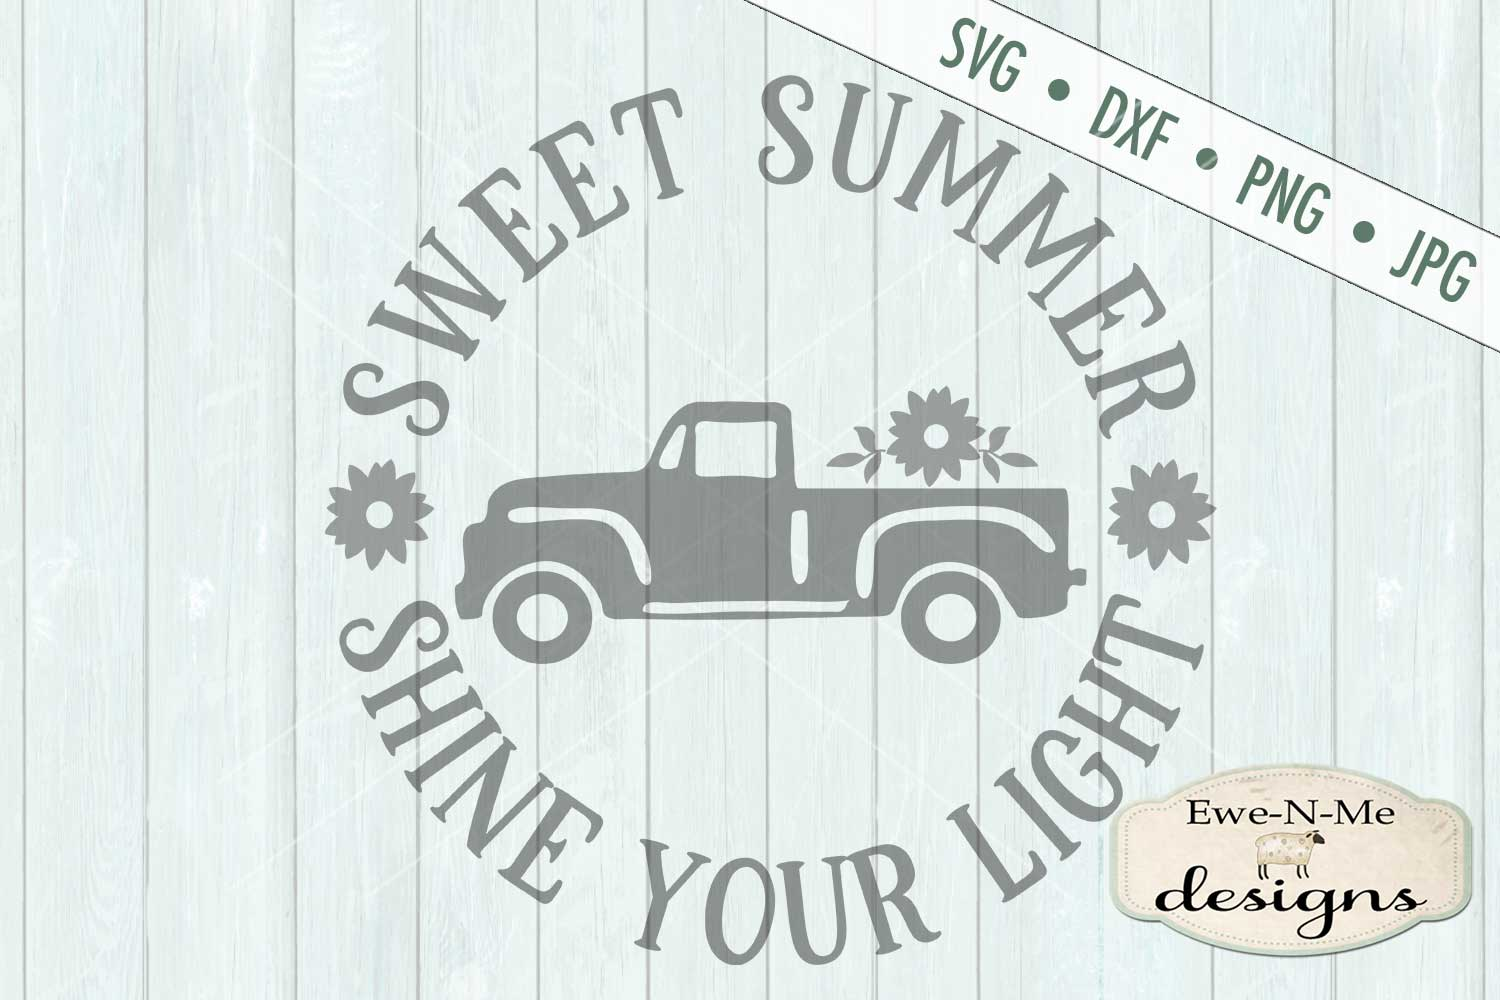 Sweet Summer Shine Your Light Vintage Truck SVG DXF Files example image 2